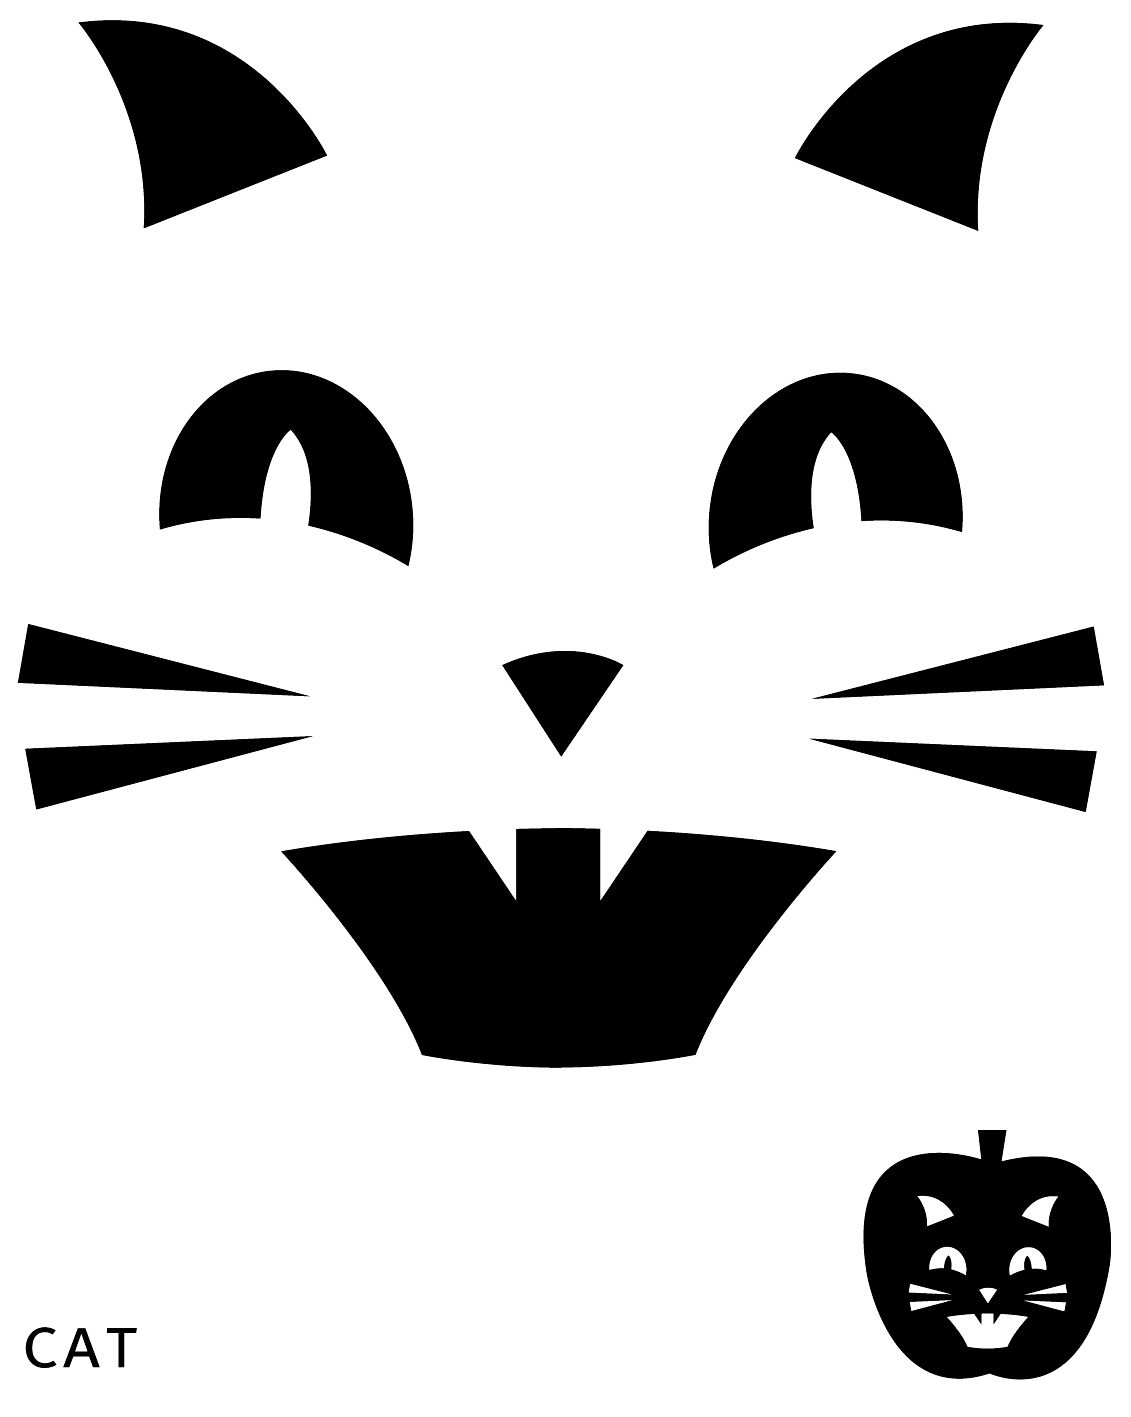 pumpkin template cat face  Cat pumpkin carving template | Halloween pumpkin carving ...